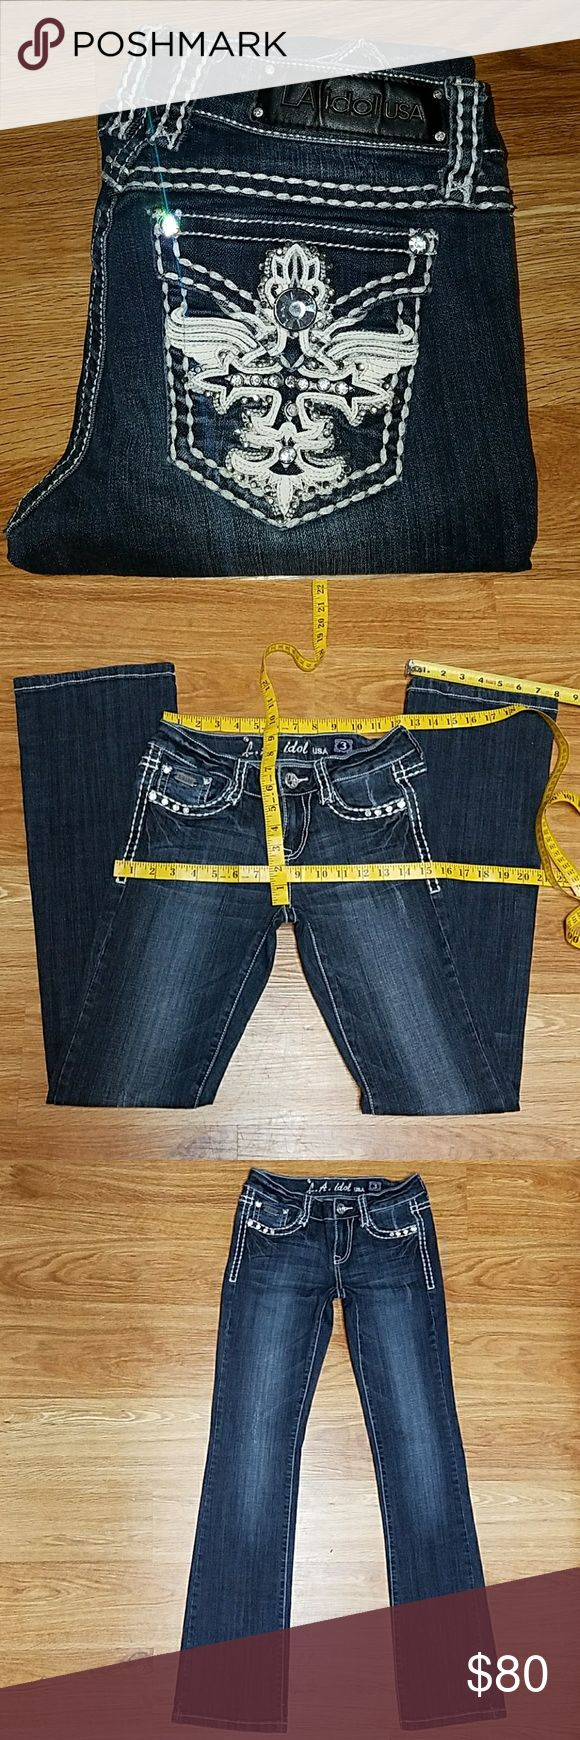 LA idol Jeans (Rescued/Thrifted) Like New LA idol Jeans usa 1-item  Size-3 Inseam - (32 inches, Rmesured)(says L:34)  Back rise - 12 inches  (Sizes may very depending on style and Brands)(please refer to pics) 97% Cotton  3% ELASTAN  Rn# 81005 LA idol Jeans USA! Soft beautiful fabric! Great Quality, like new, As is. No returns.💎BLING!  BLING! 💎Stored in dark dry storage excellent quality. Buy with confidence! Thank you for your purchases! 😄 LA idol usa Jeans Boot Cut